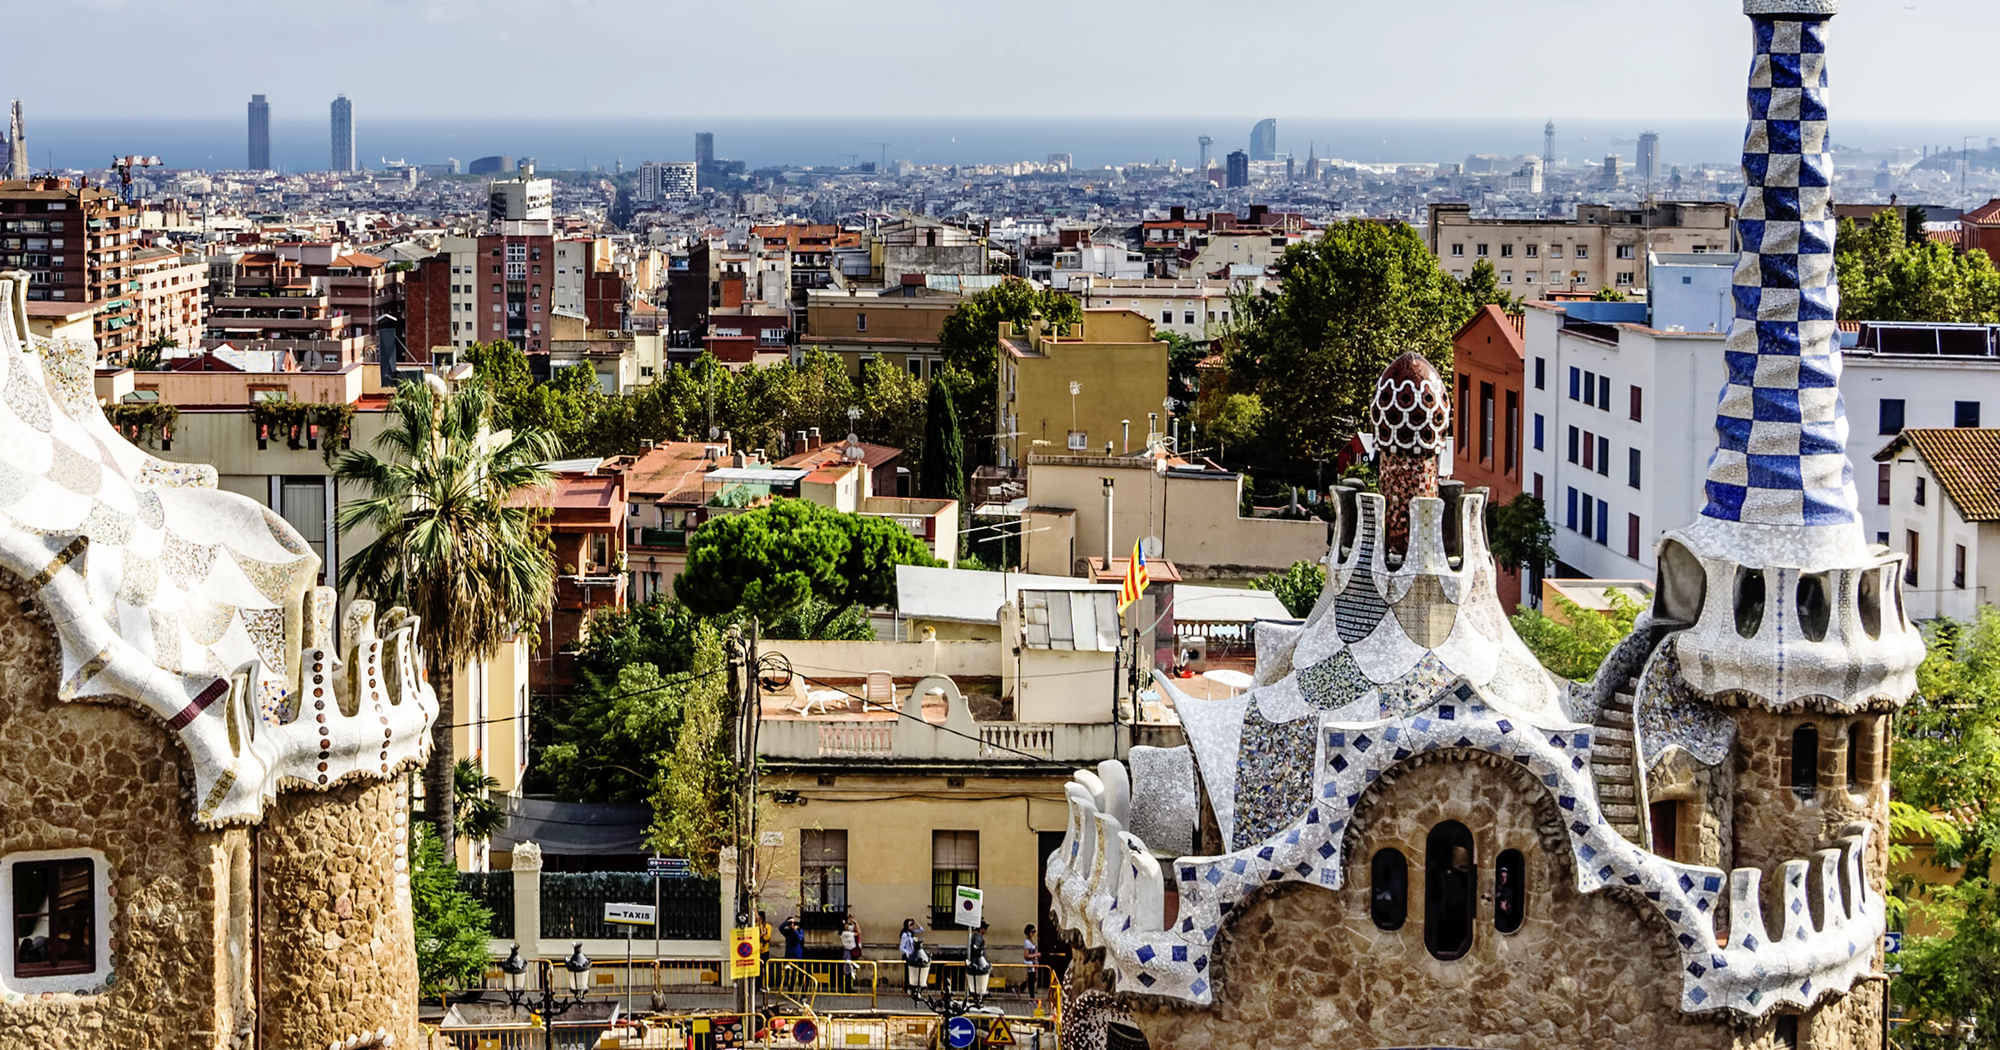 This New Airline Will Take You To Europe For Only $149